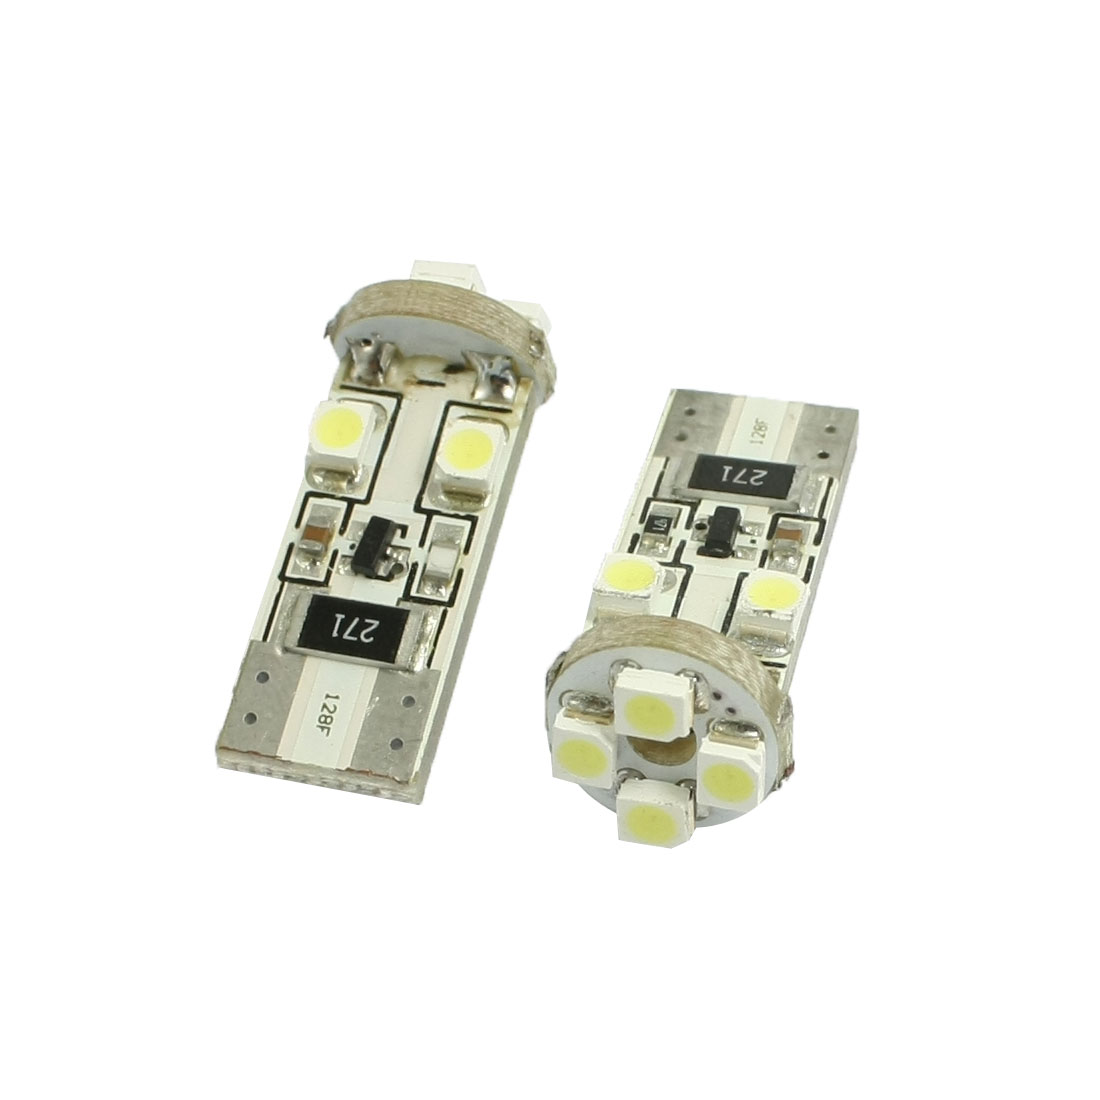 2 pcs T10 White 5050 SMD 5-LED Canbus Error Free Car LED Light Bulb